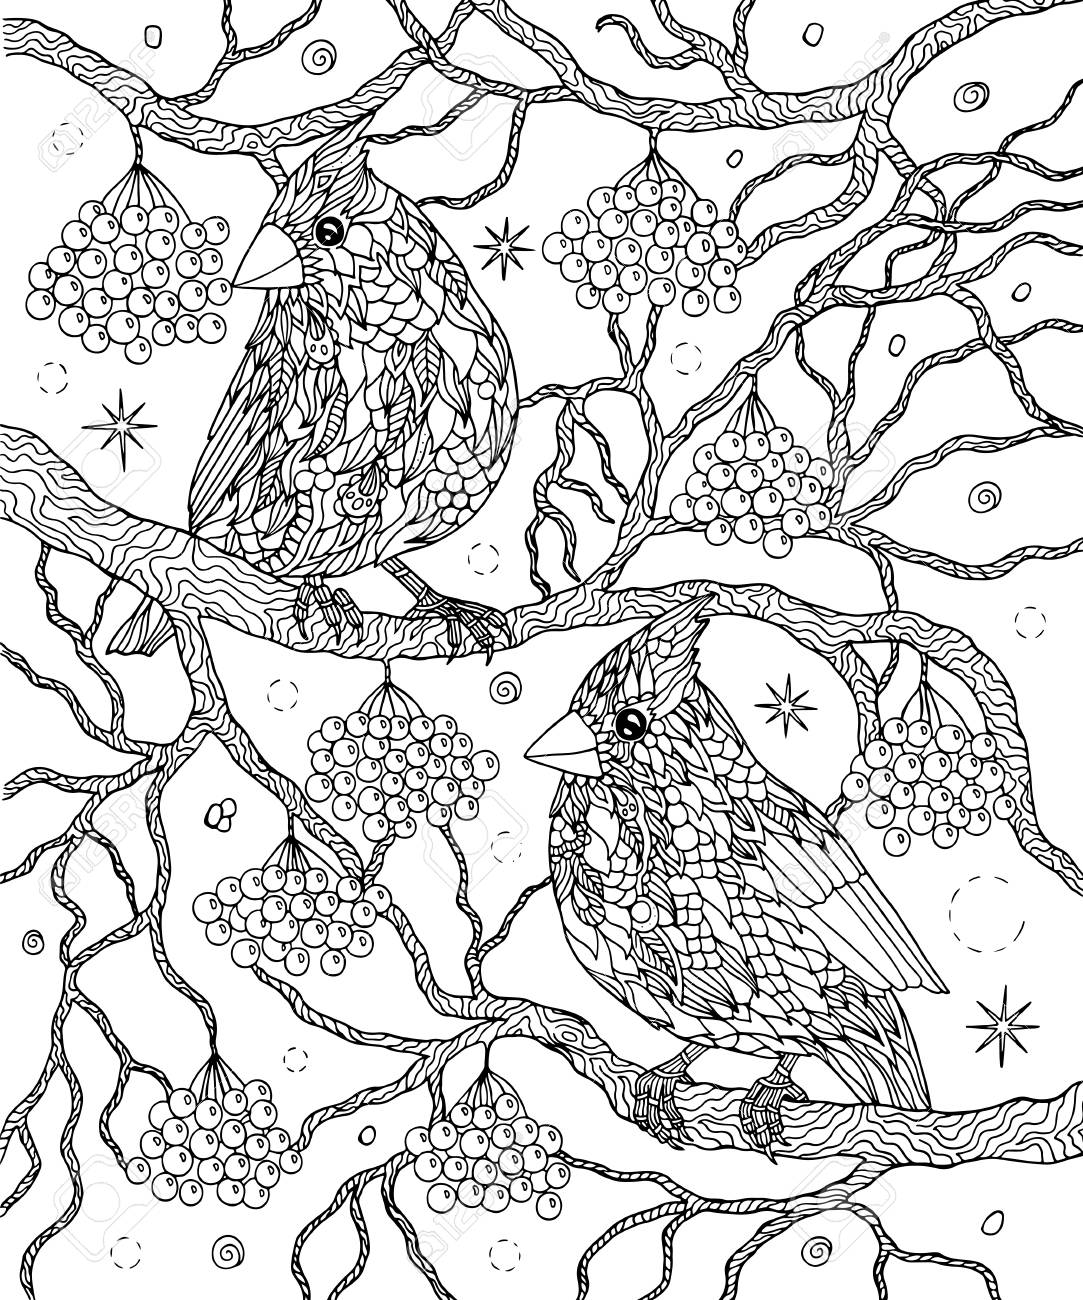 Birds and berries coloring page. Northern cardinals vector illus